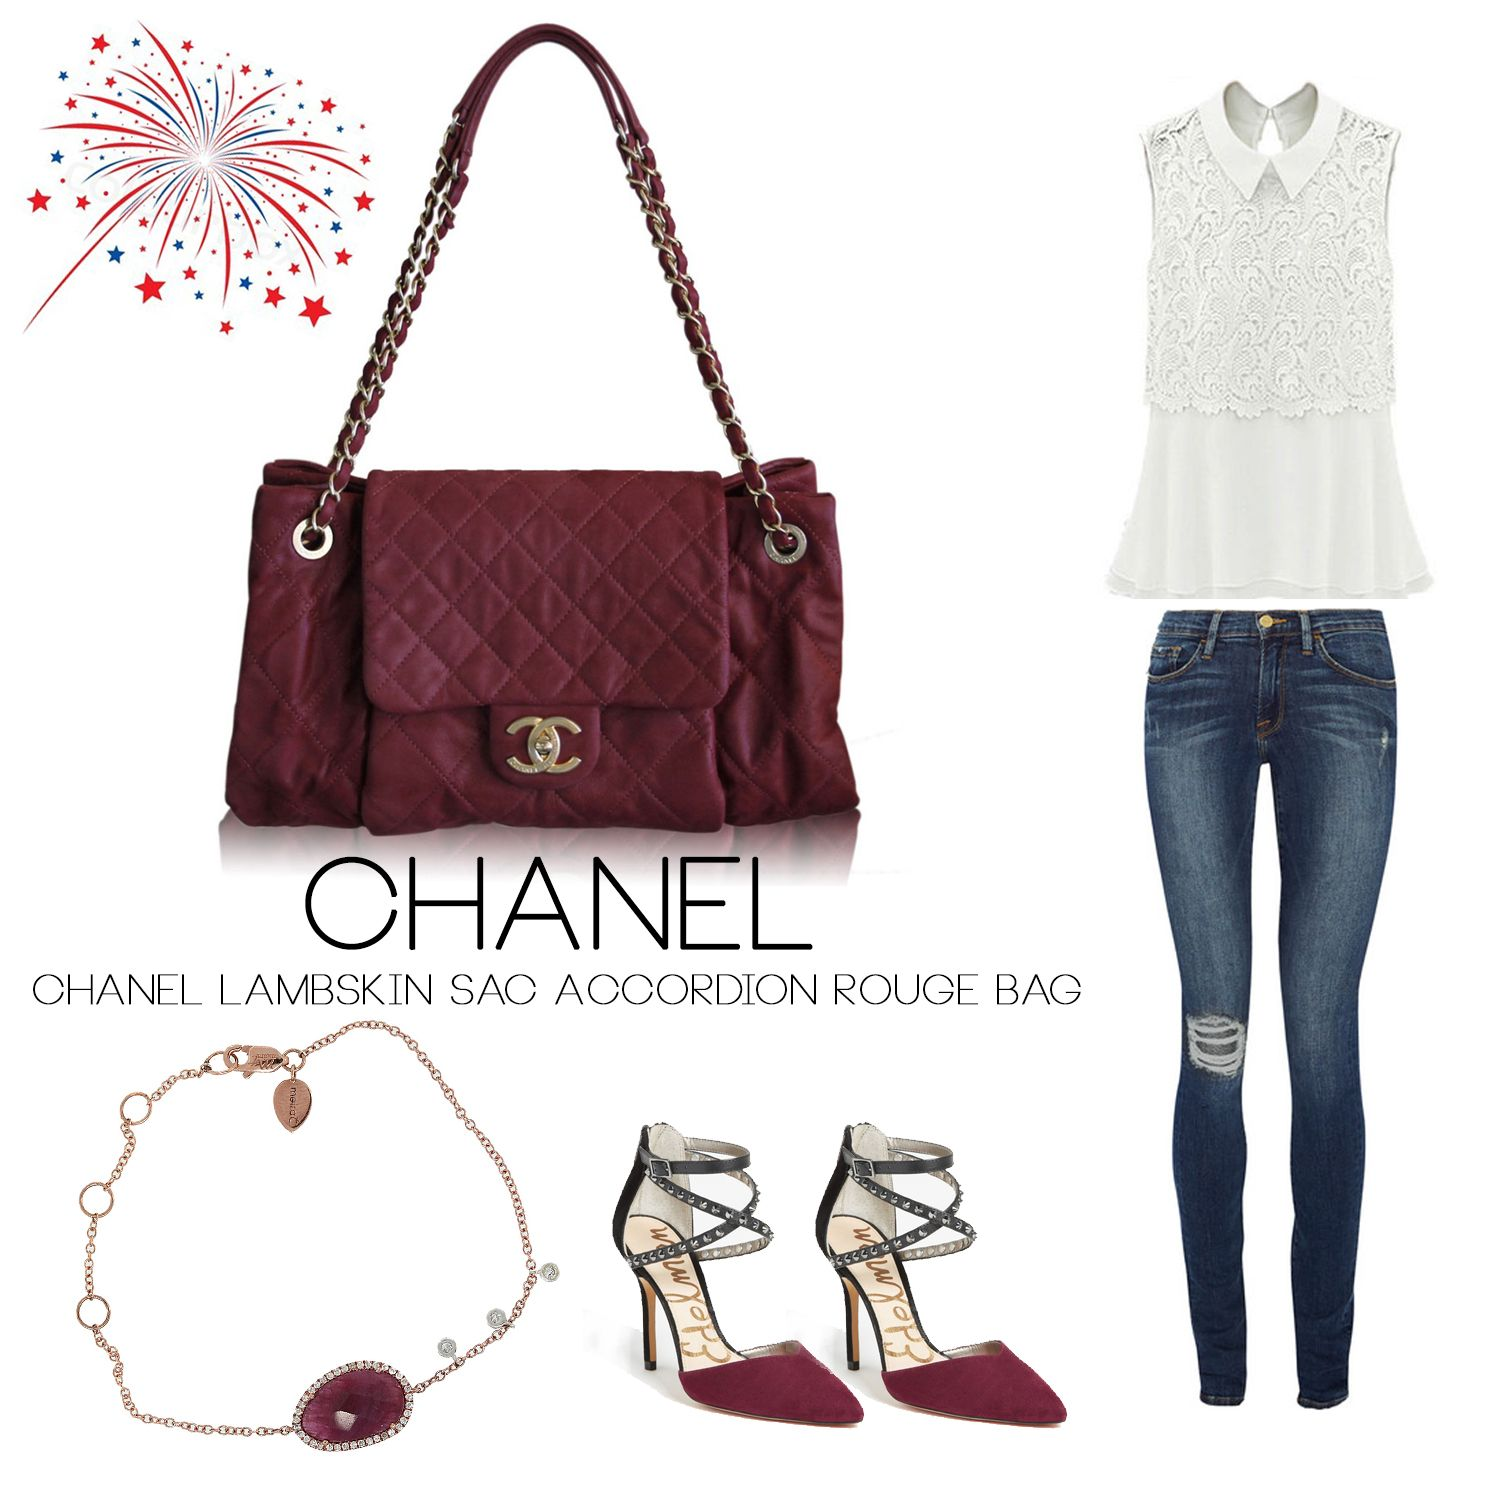 6eb302004b79 Chanel Sac Accordion Rouge Flap Bag Boca Raton | Outfit of The Day ...